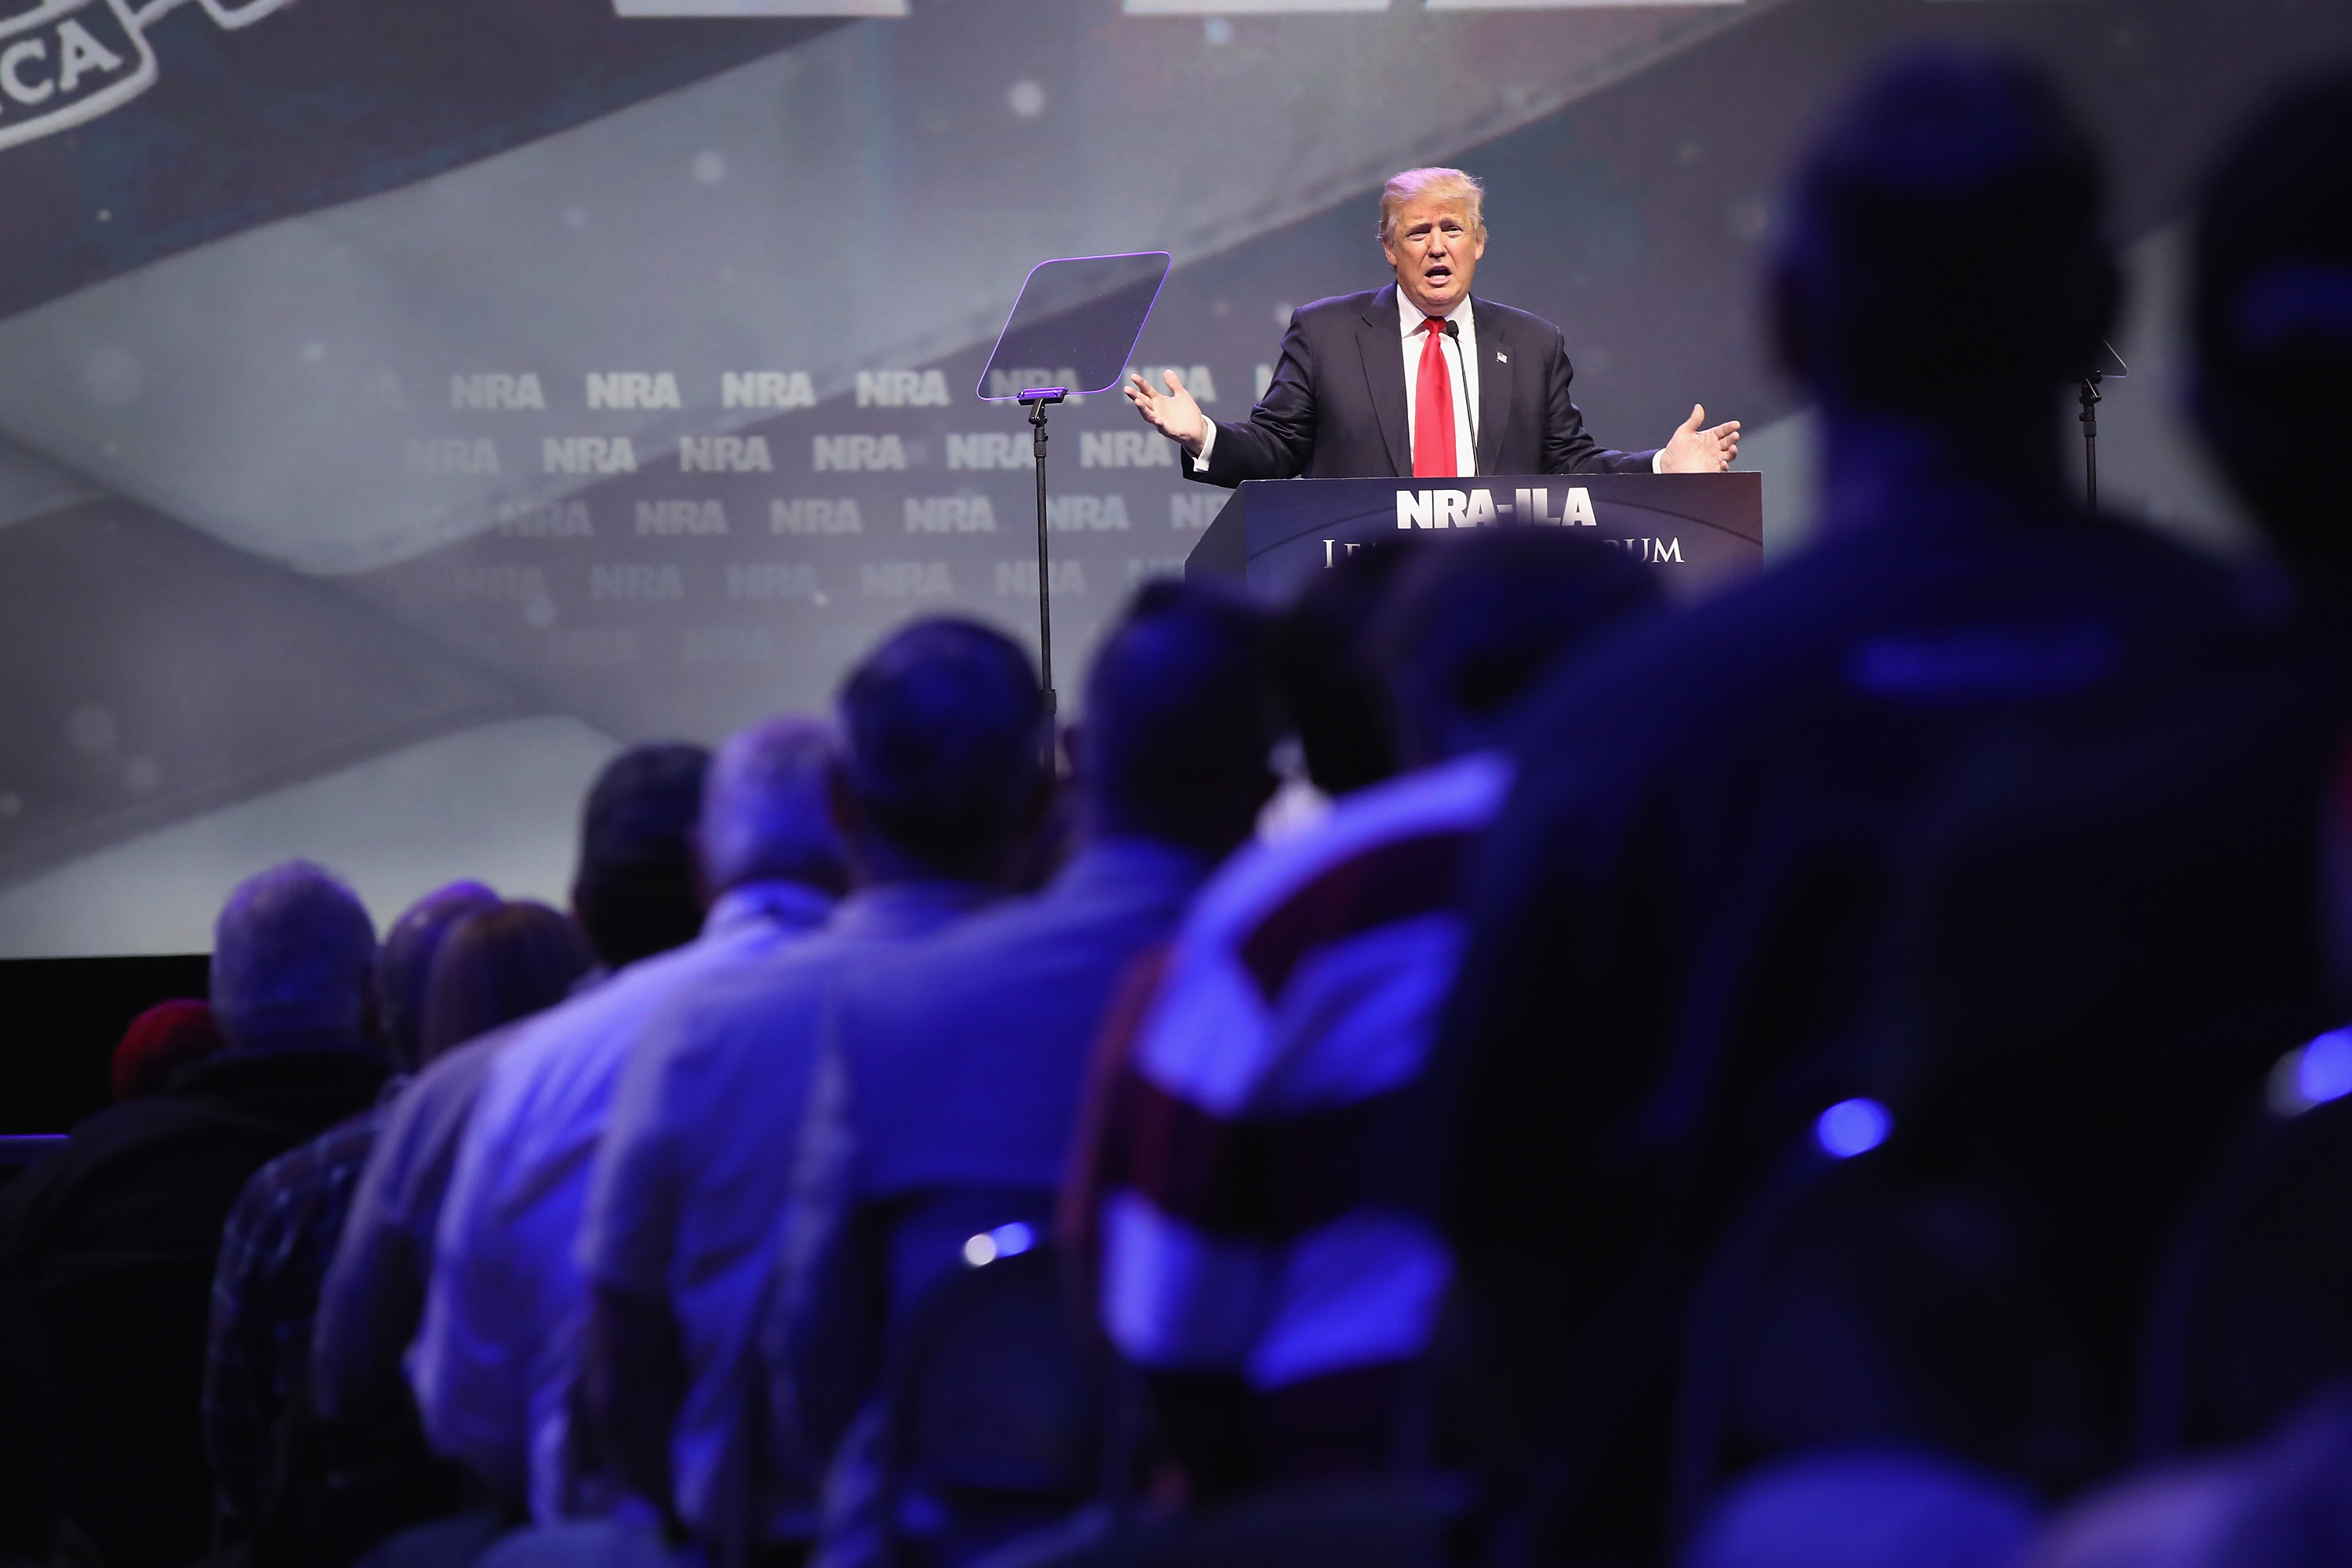 Republican presidential candidate Donald Trump speaks at the National Rifle Association's NRA-ILA Leadership Forum during the NRA Convention at the Kentucky Exposition Center on May 20, 2016 in Louisville, Kentucky. The NRA endorsed Trump at the convention. The convention runs May 22.